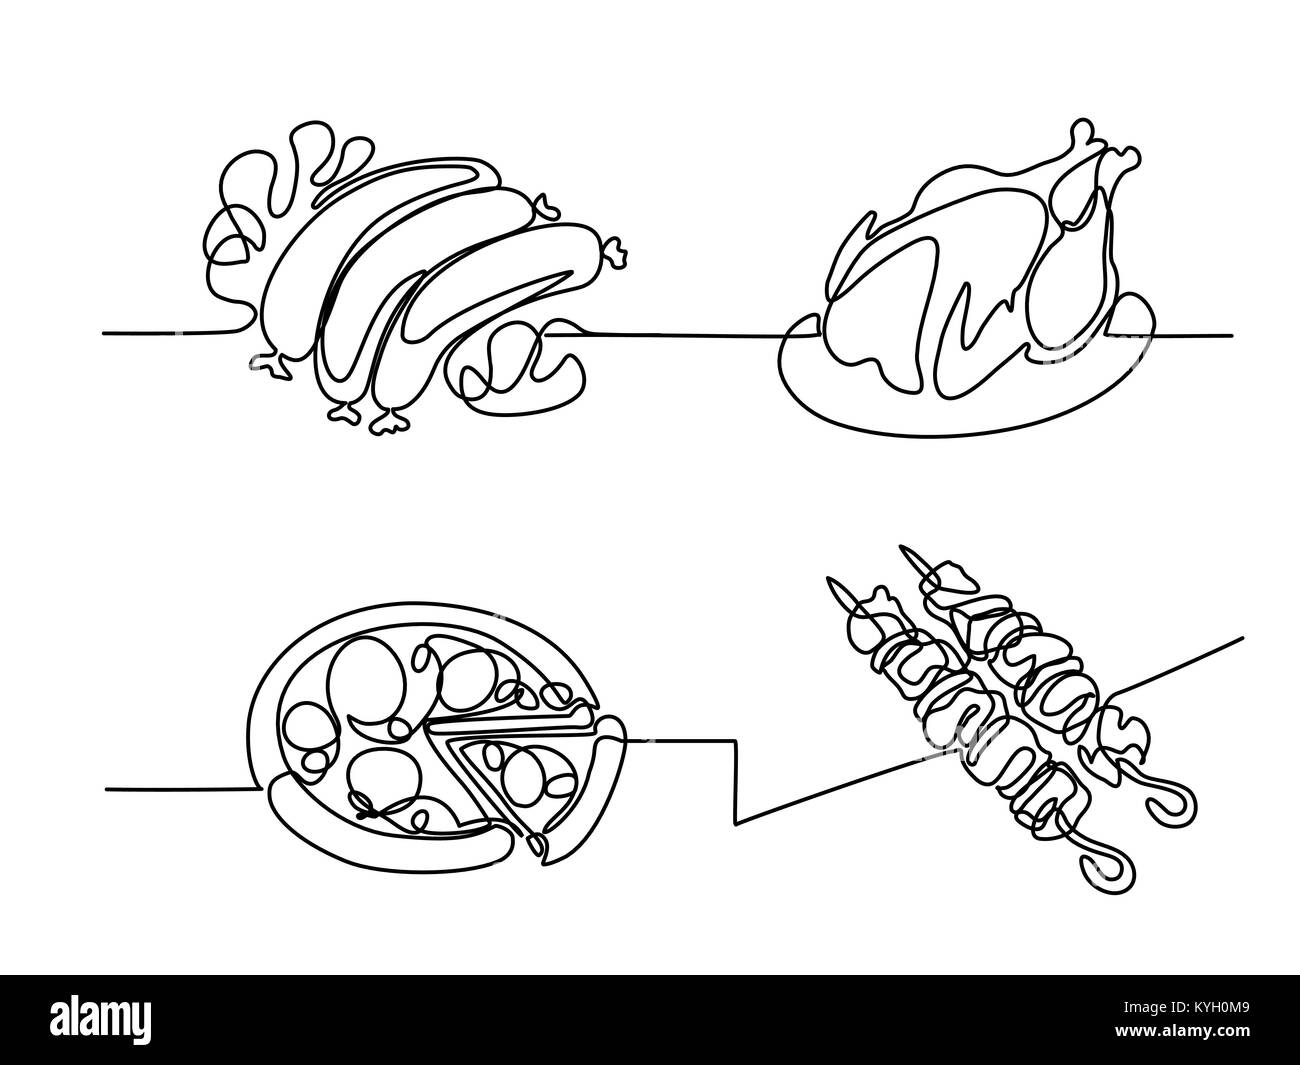 Line Drawing Food : Line drawing food stock photos